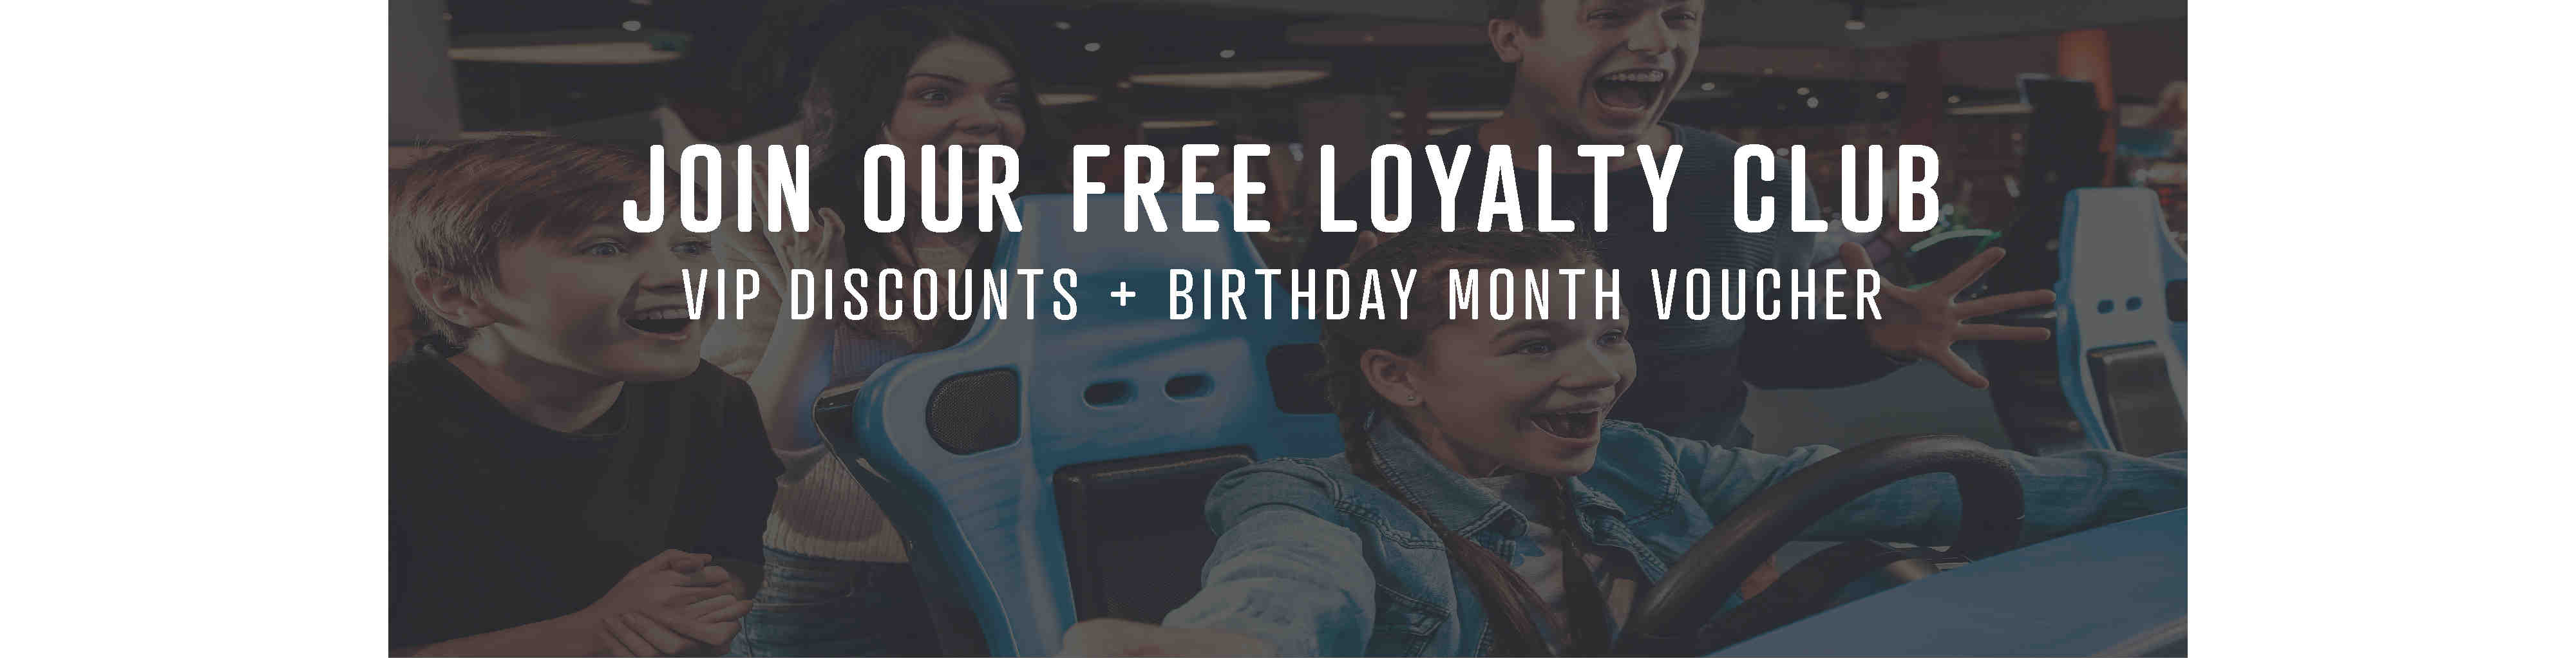 Join our free loyalty club today